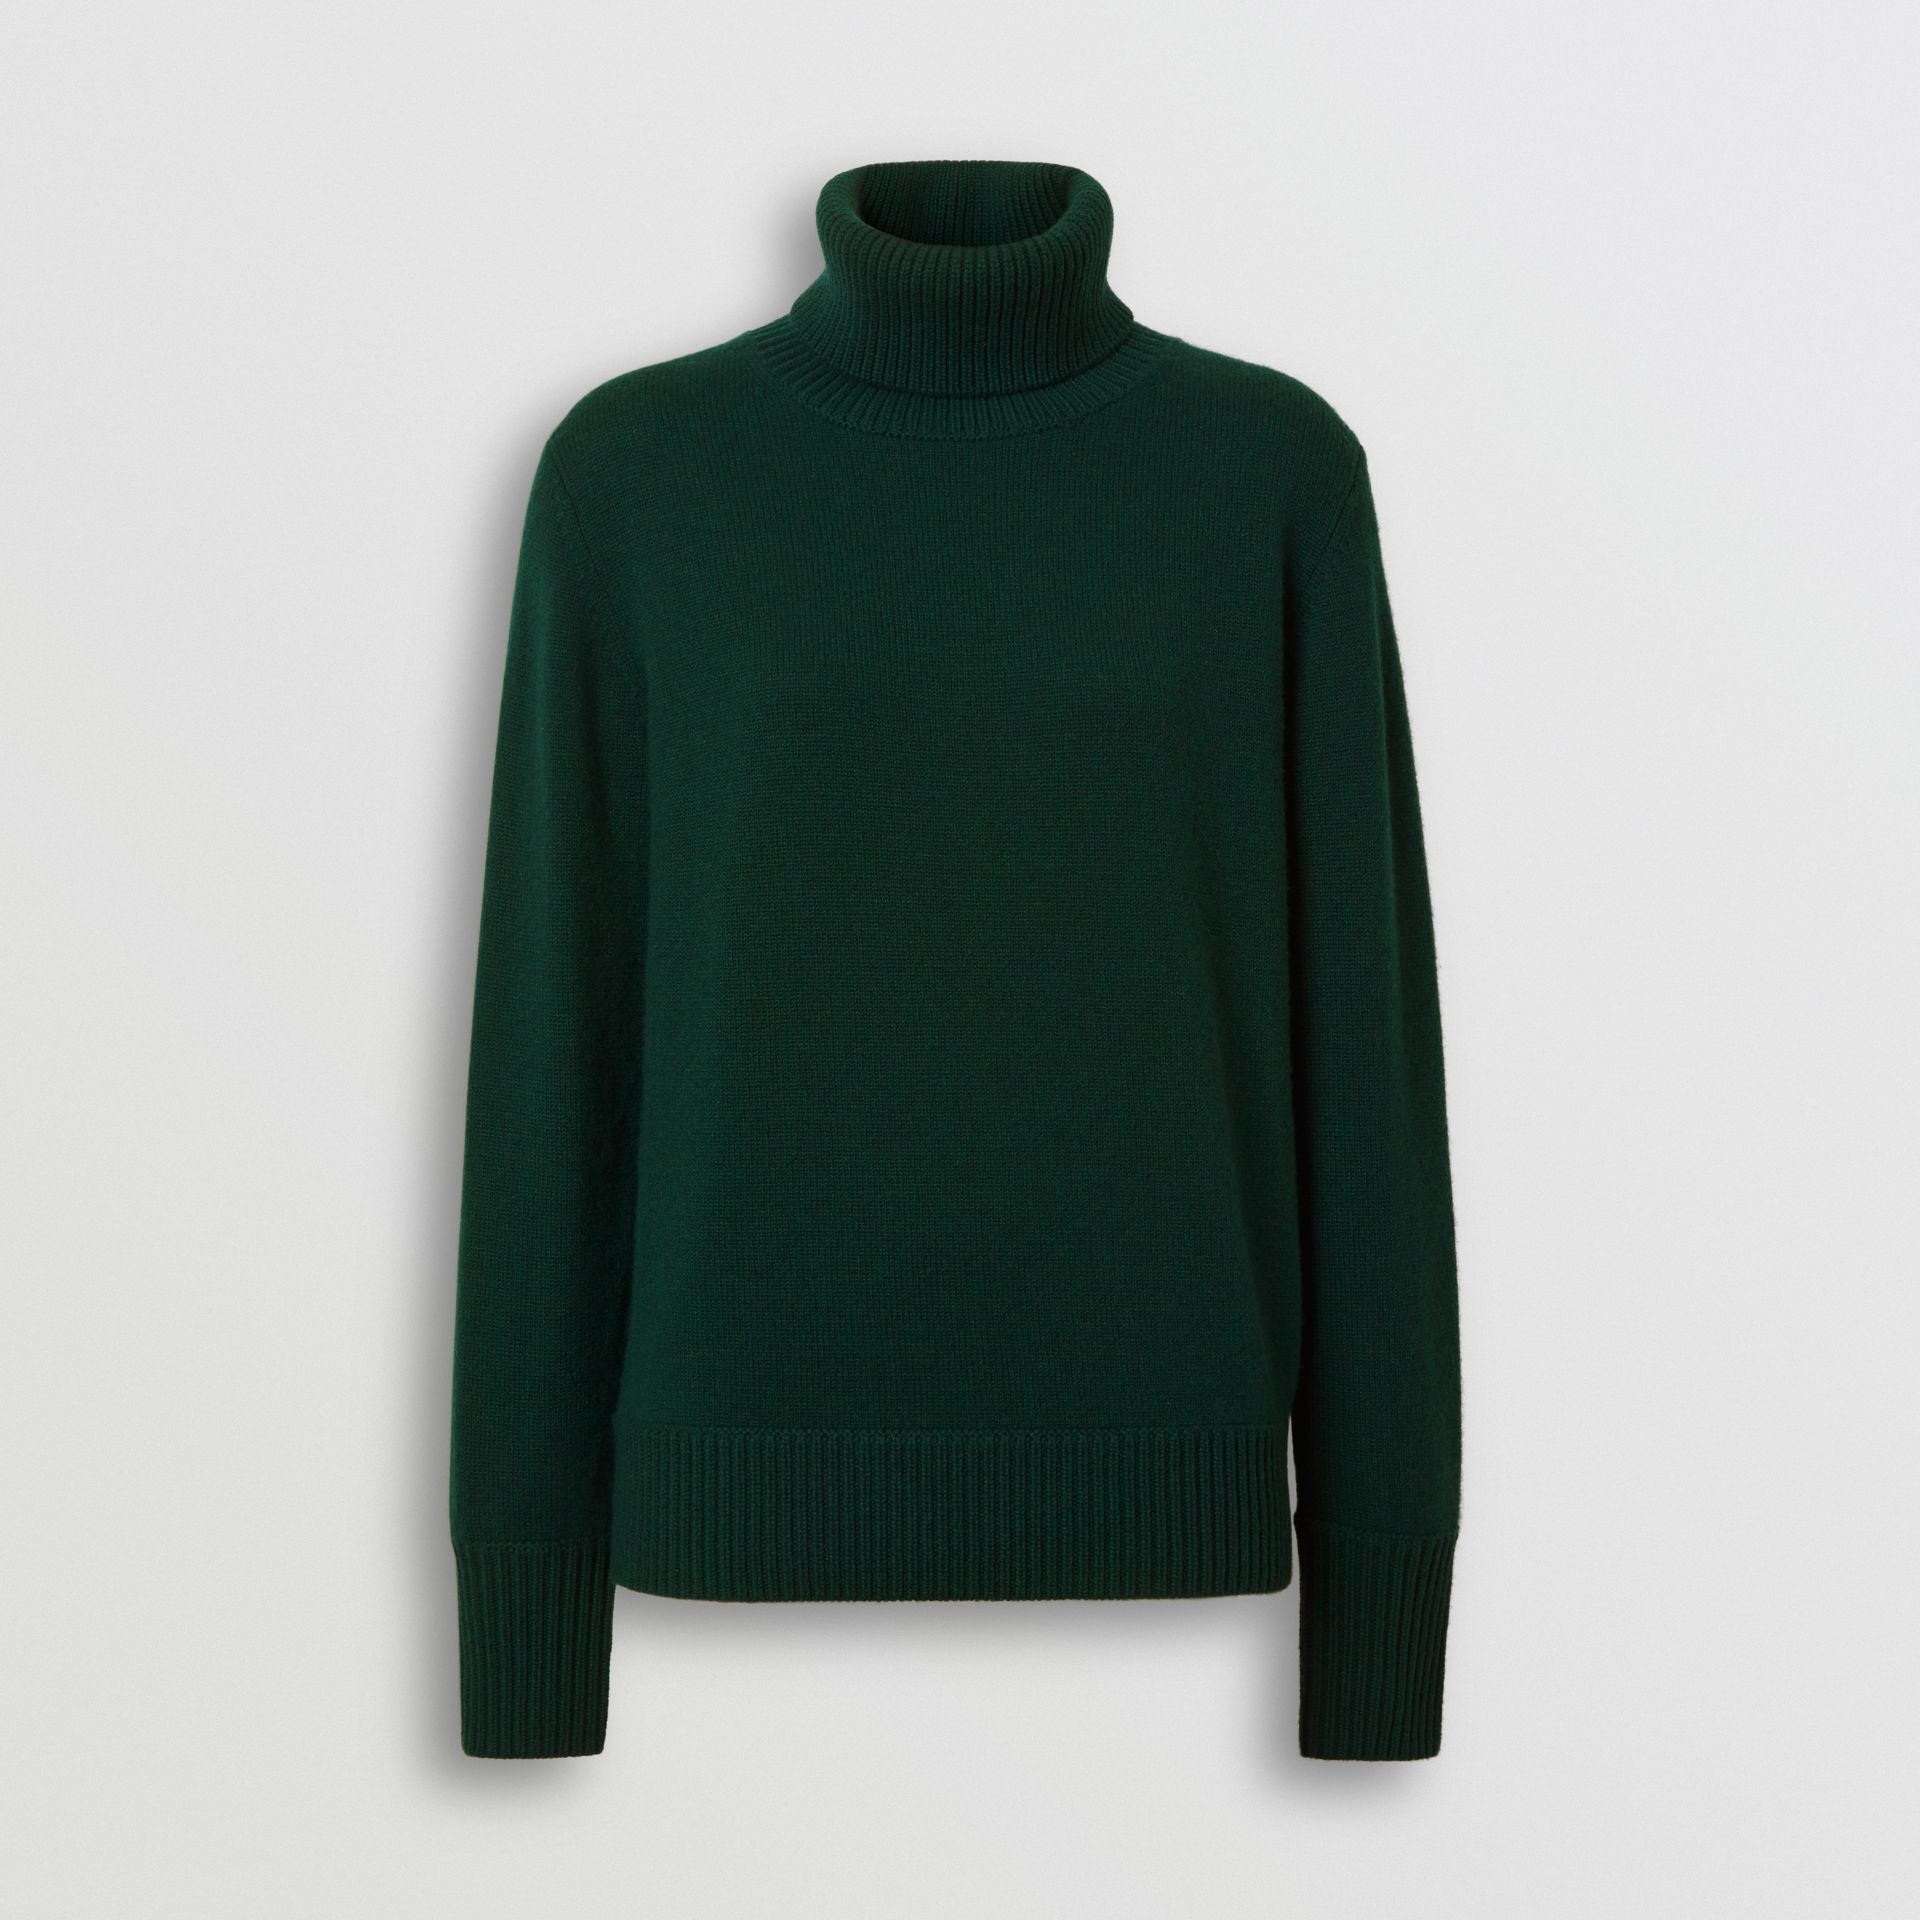 Embroidered Crest Cashmere Roll-neck Sweater in Dark Cedar Green - Women | Burberry - gallery image 3